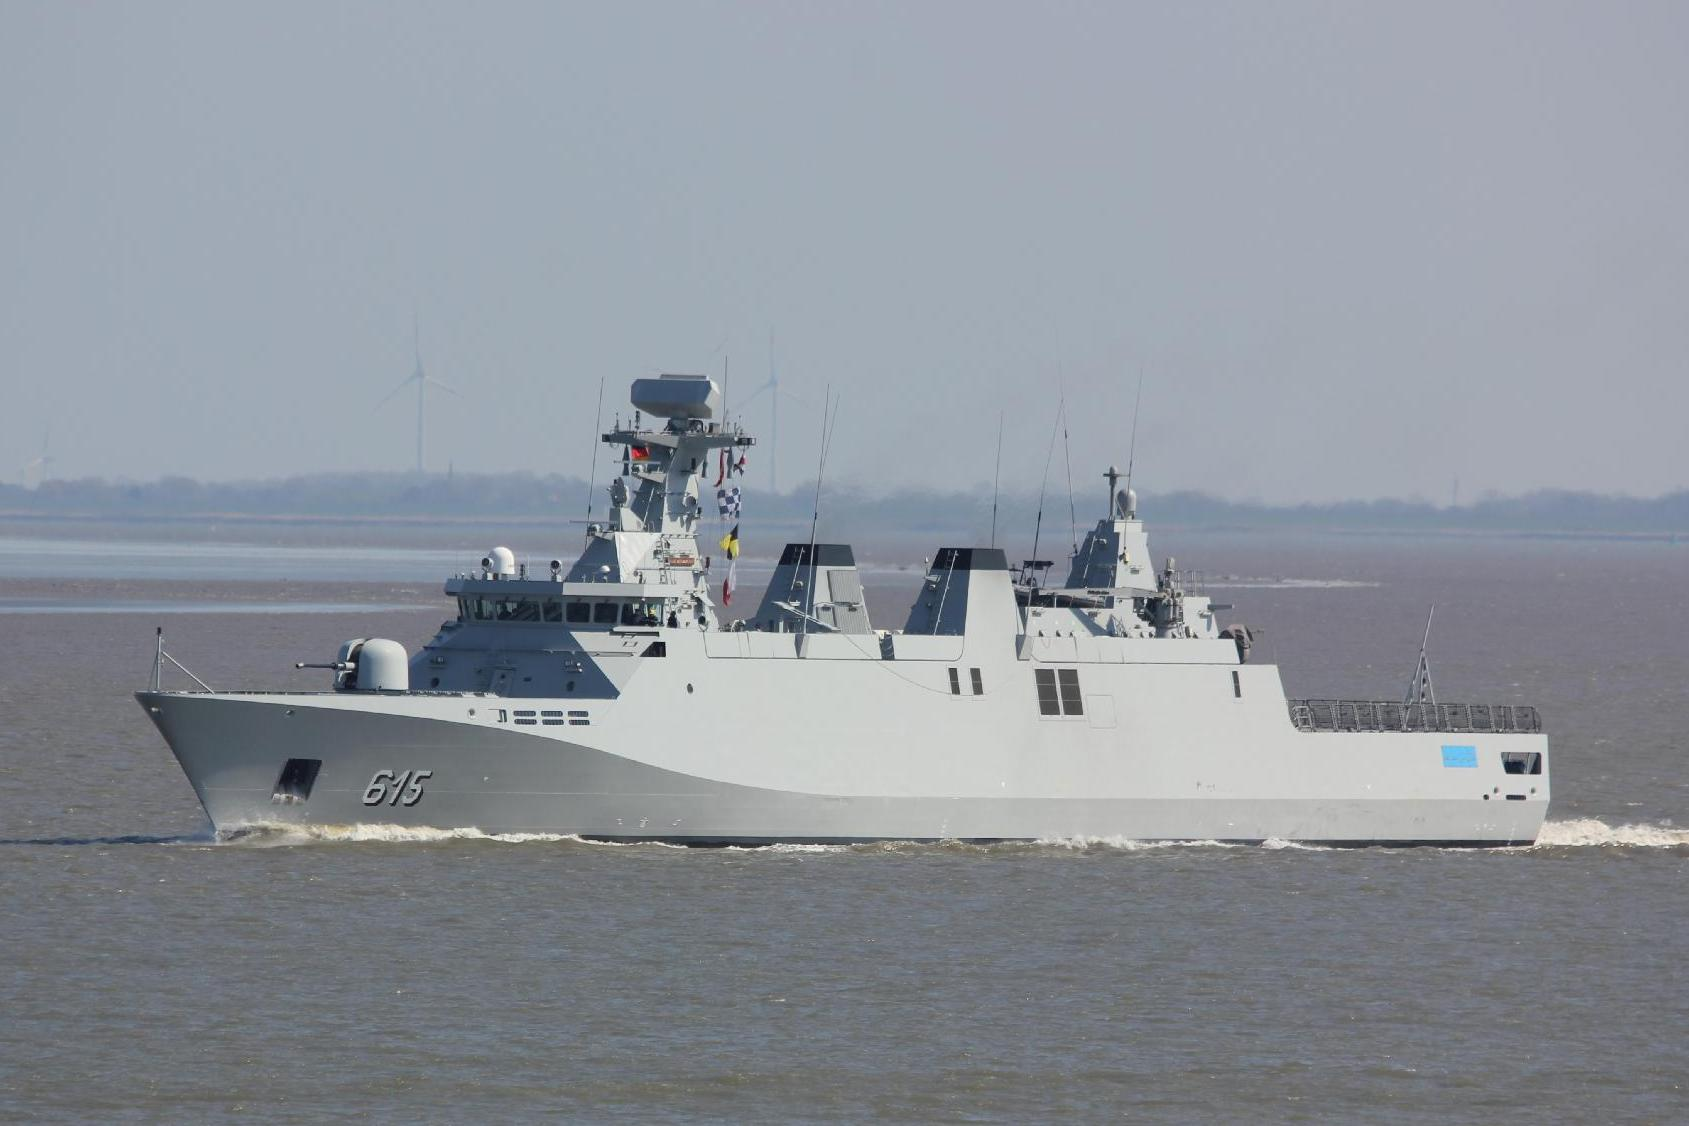 Royal Moroccan Navy Sigma class frigates / Frégates marocaines multimissions Sigma - Page 26 3096443